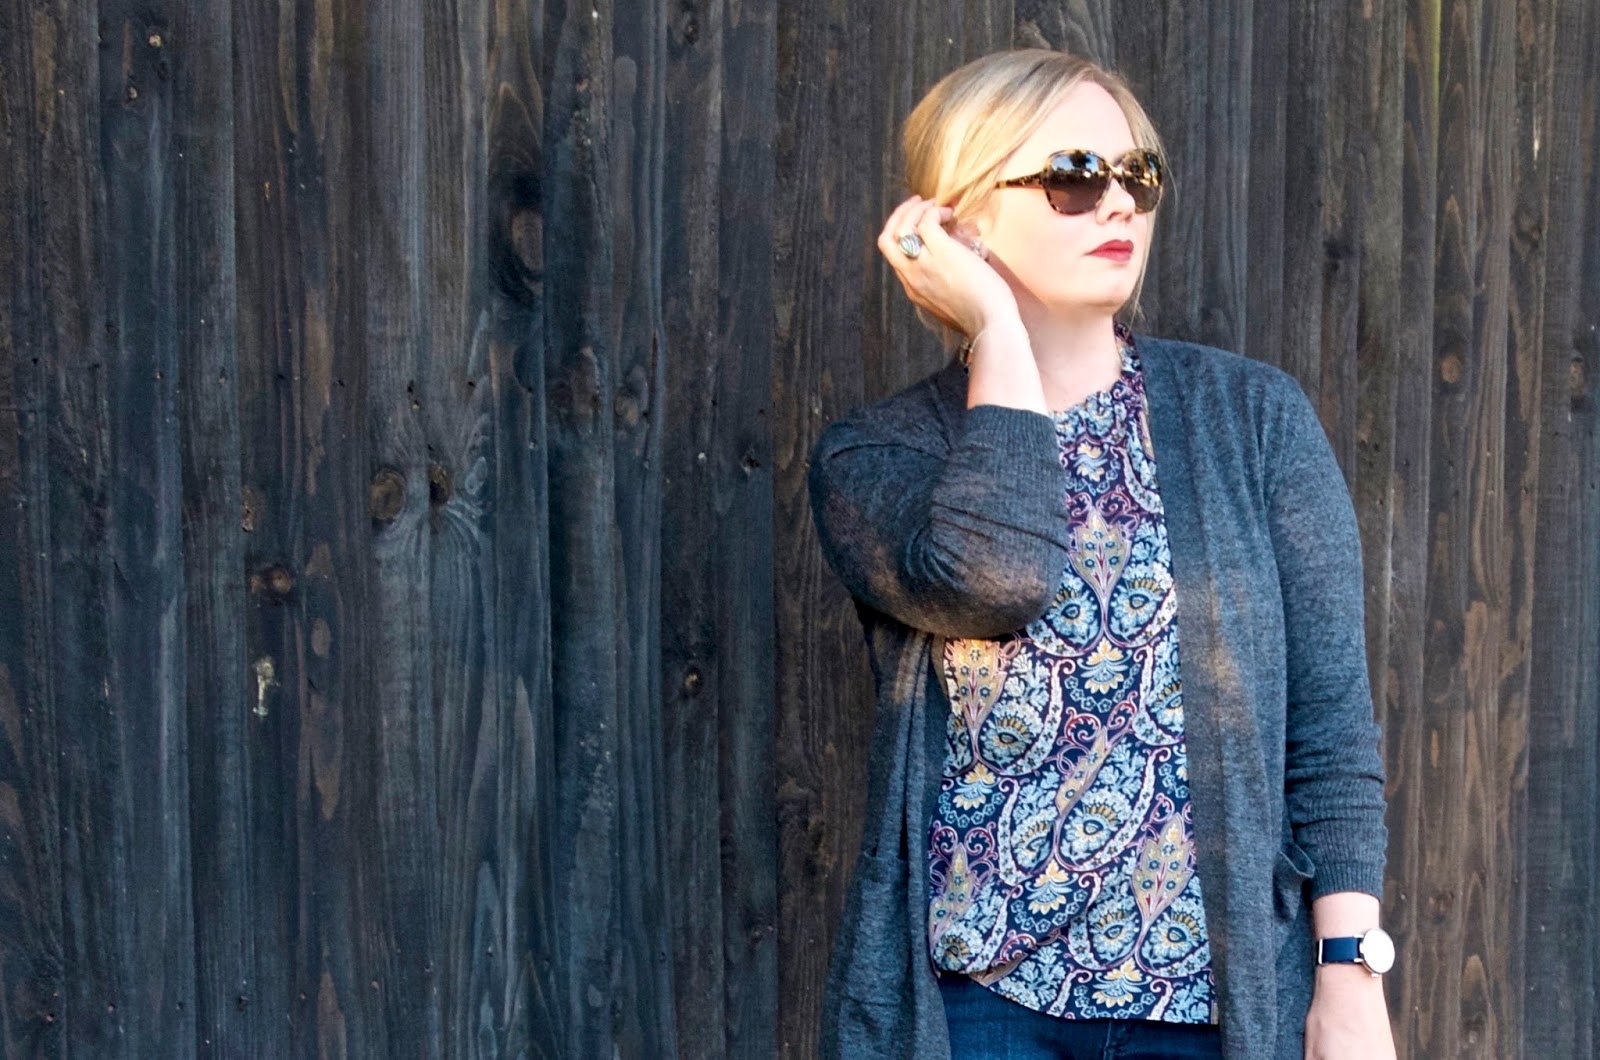 paisley sheer ruffle top with tortoiseshell sunglasses, grey cardigan, jeans and navy grossgrain watch